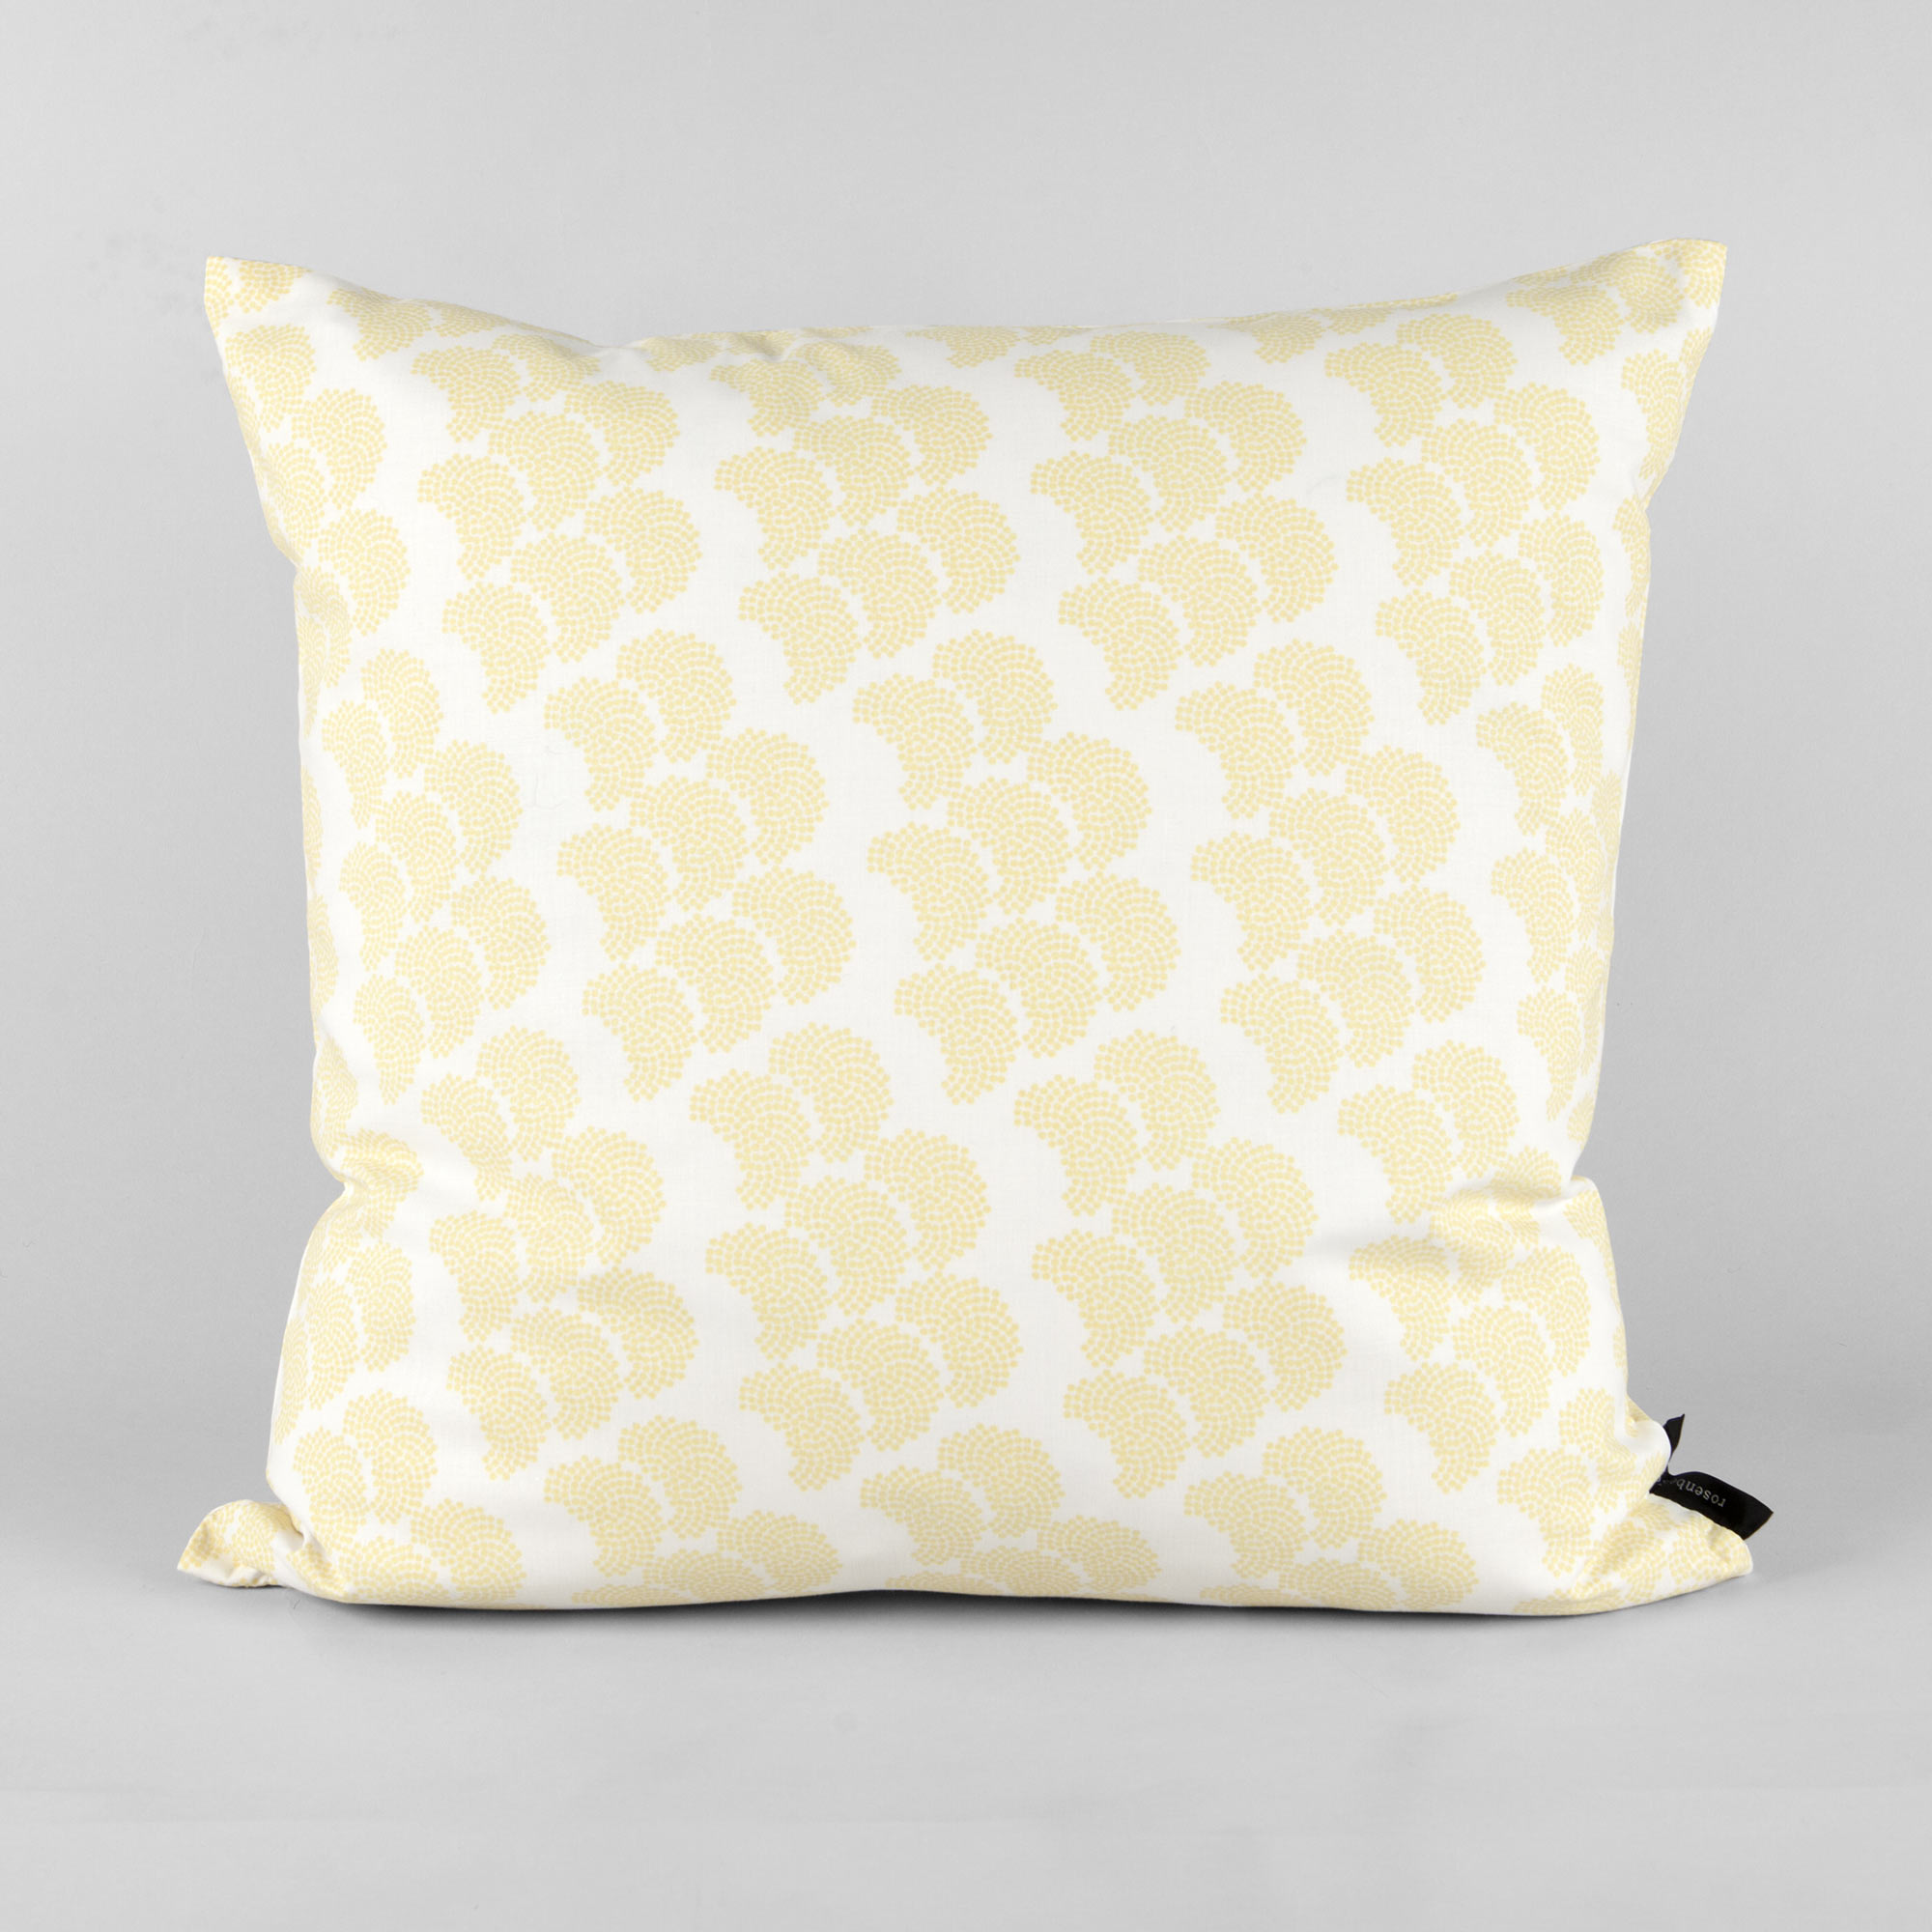 Cushion, organic cotton, Obi yellow, design by Anne Rosenberg, RosenbergCph